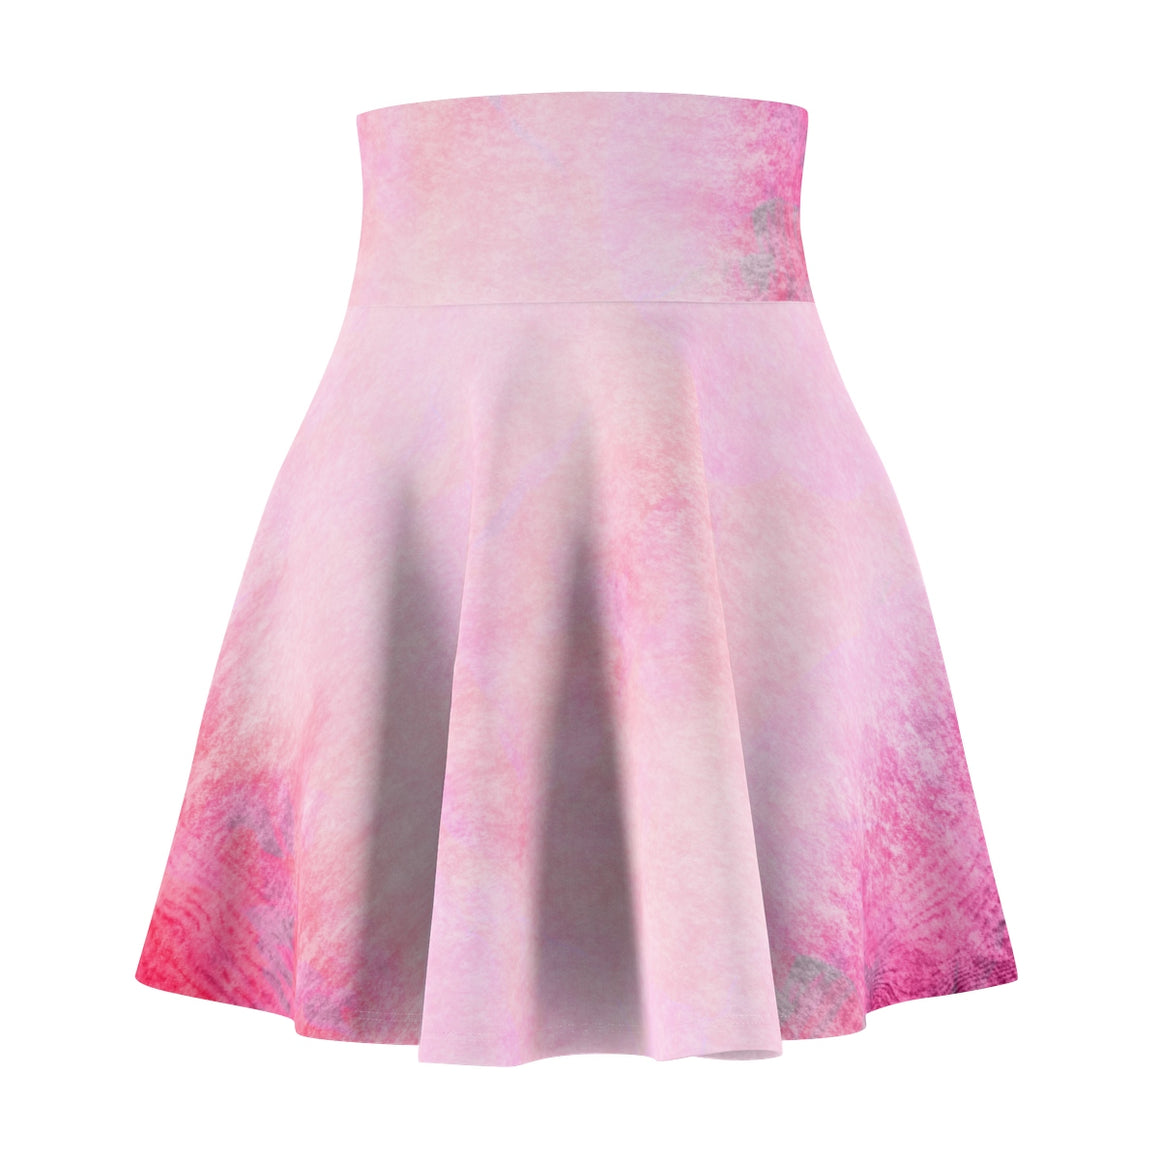 Fashionable Trendy Hot Pink Women's Skater Skirt-Stylish Skater Skirt